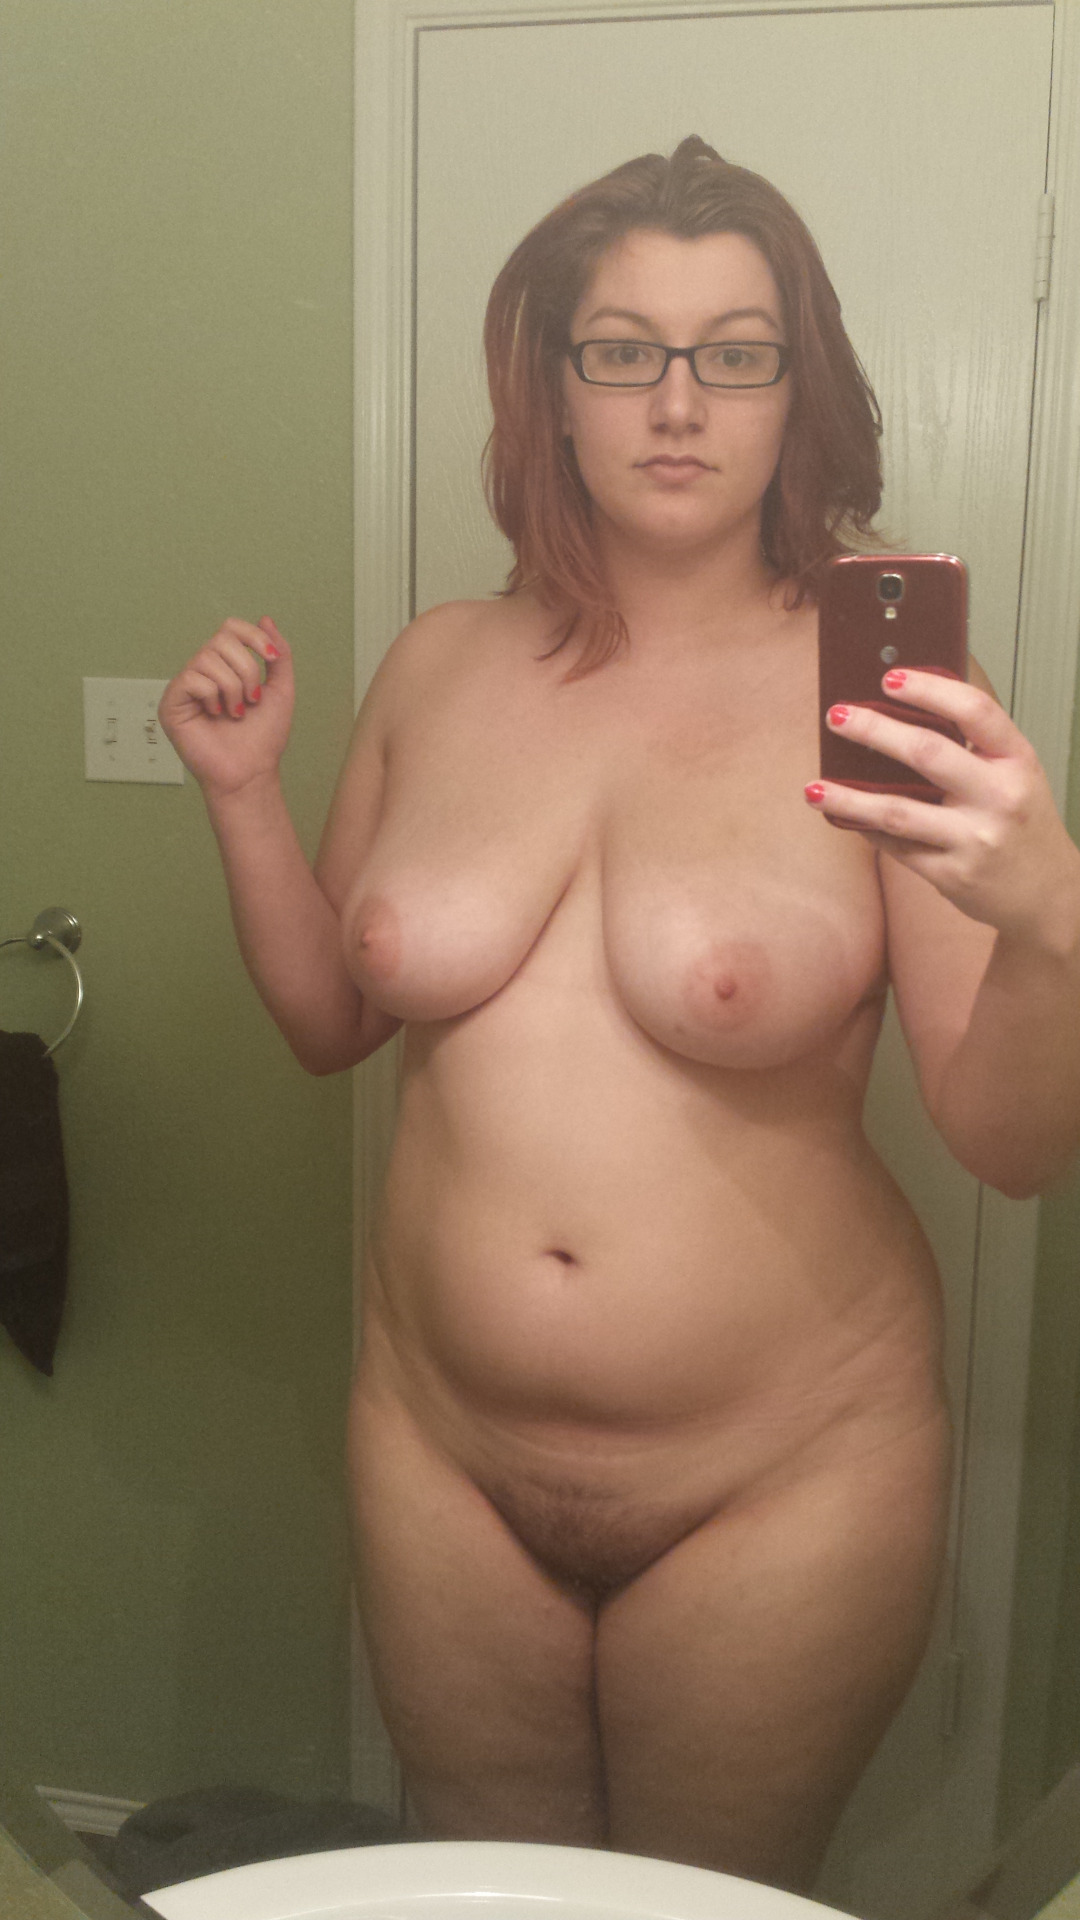 Curvy girl naked with a hairy pussy on Snapchat